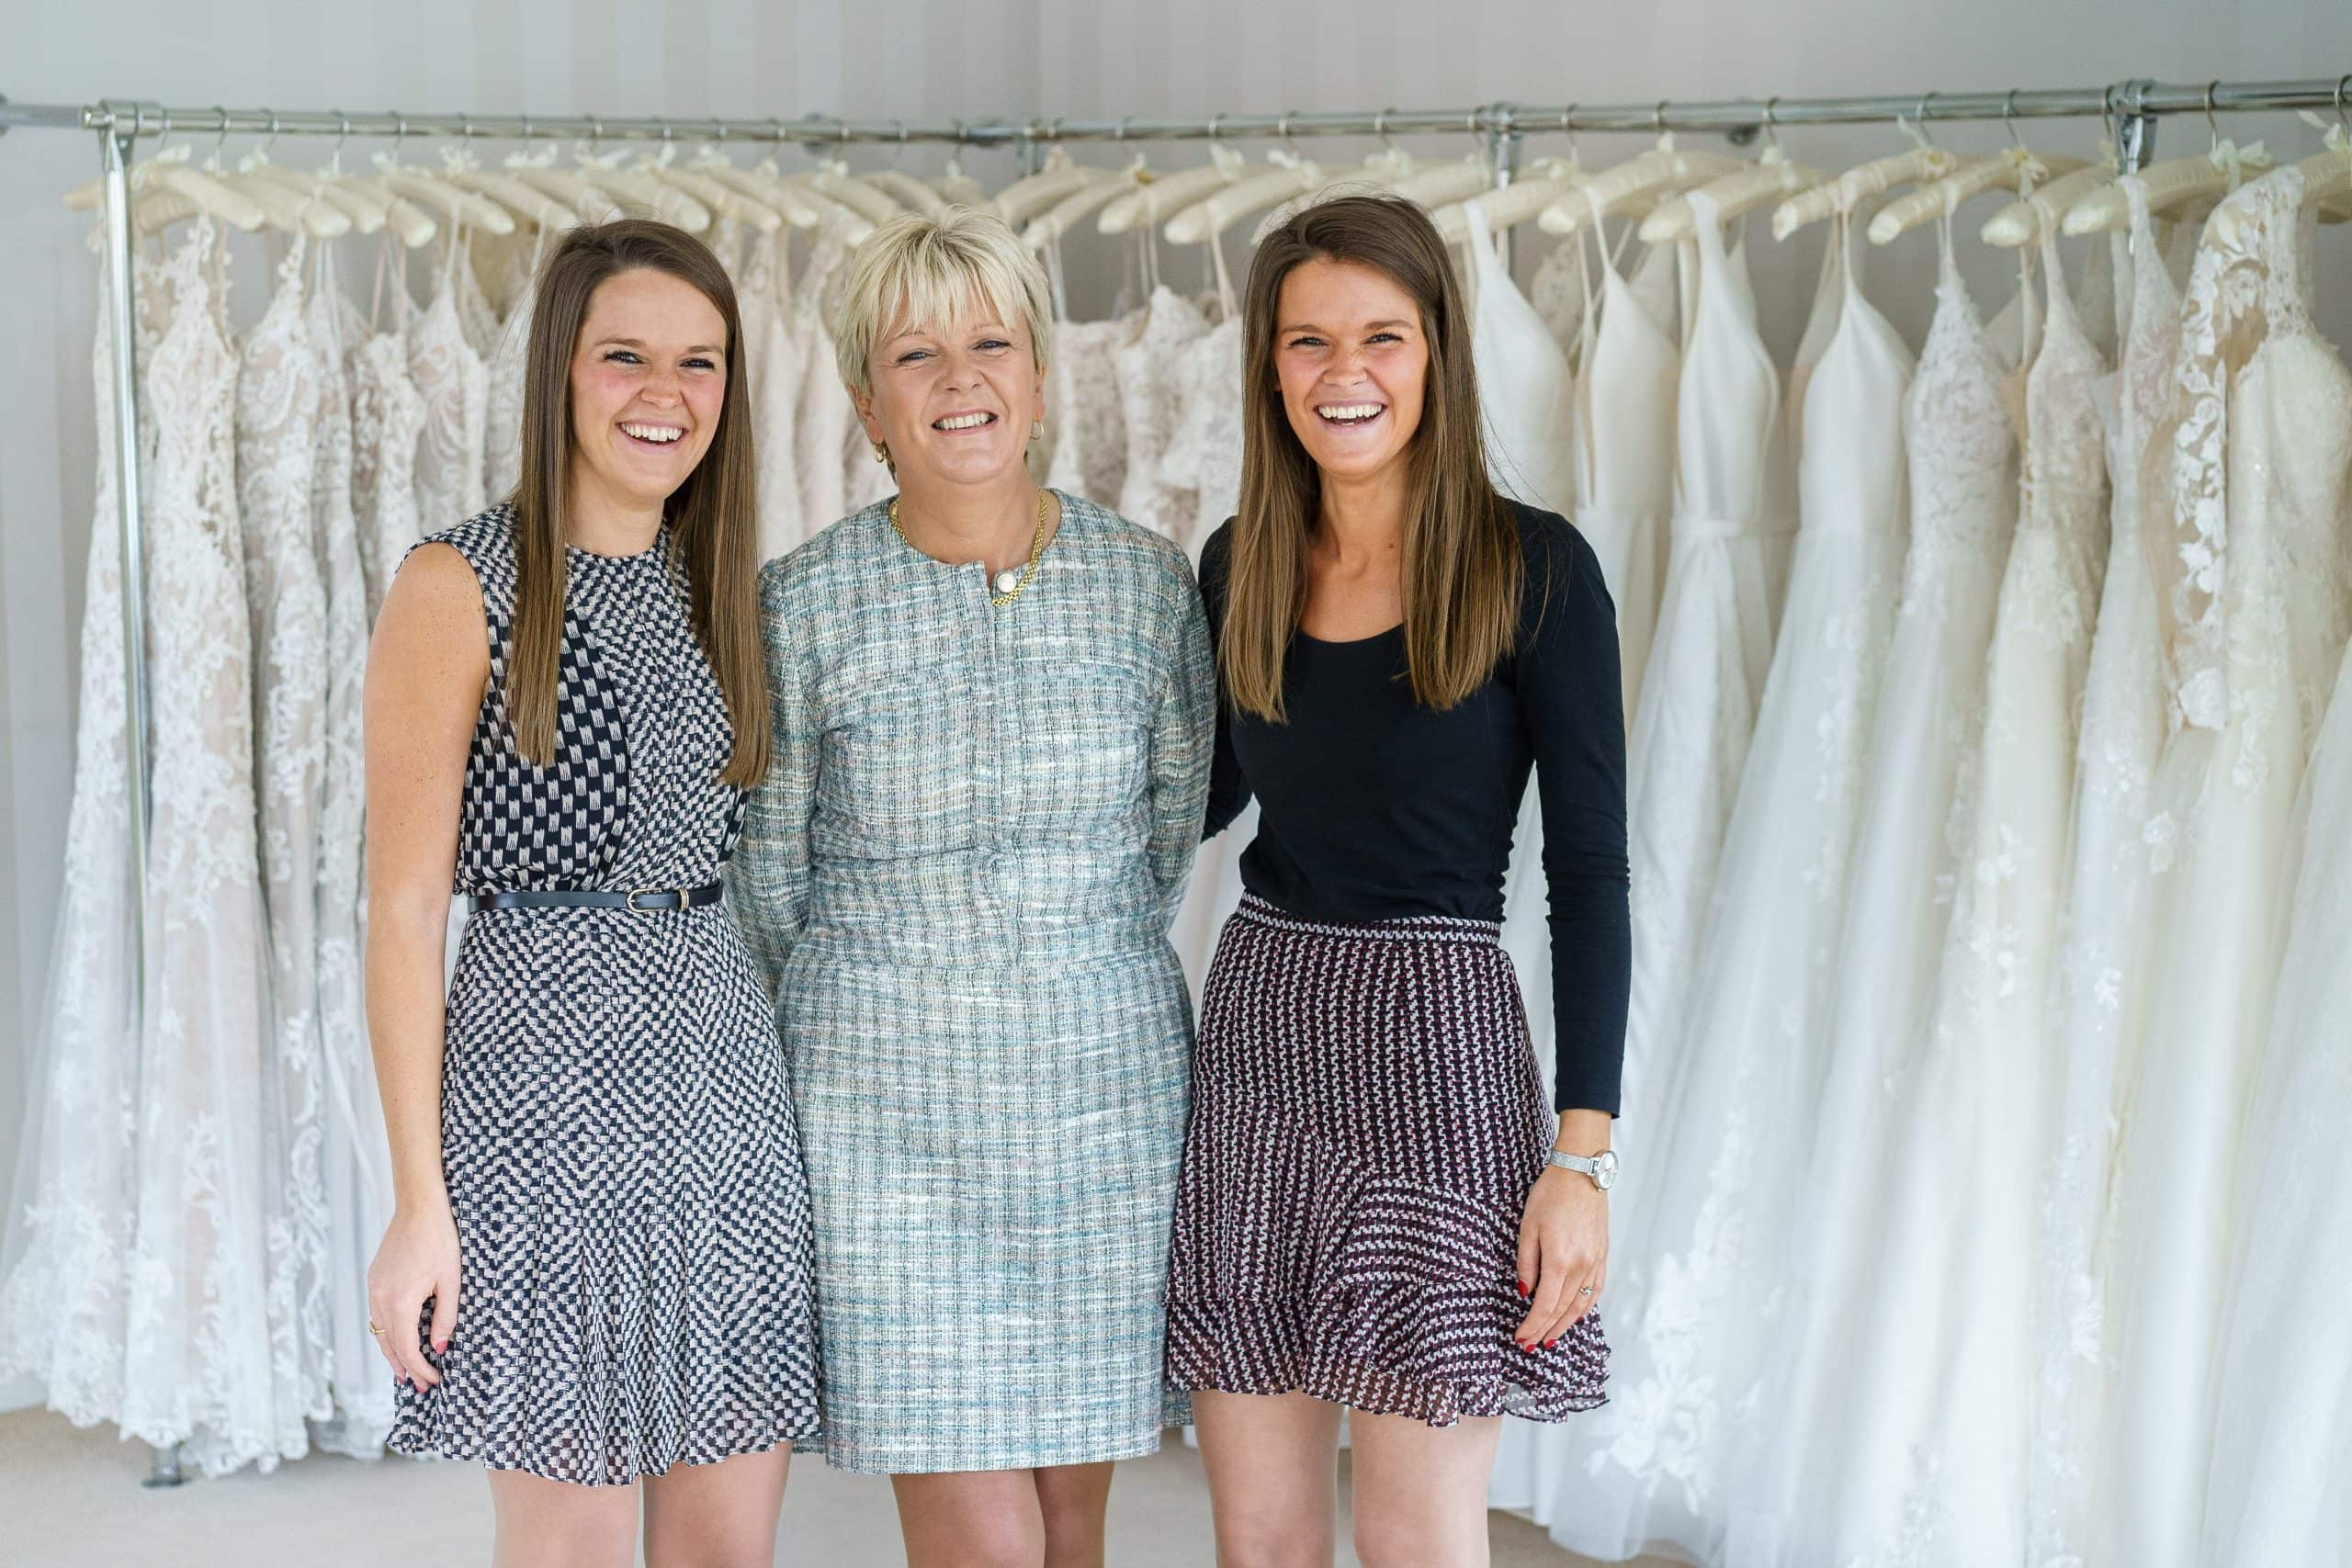 The owners of the best Bridal Shop in Nottingham pose for a group photo